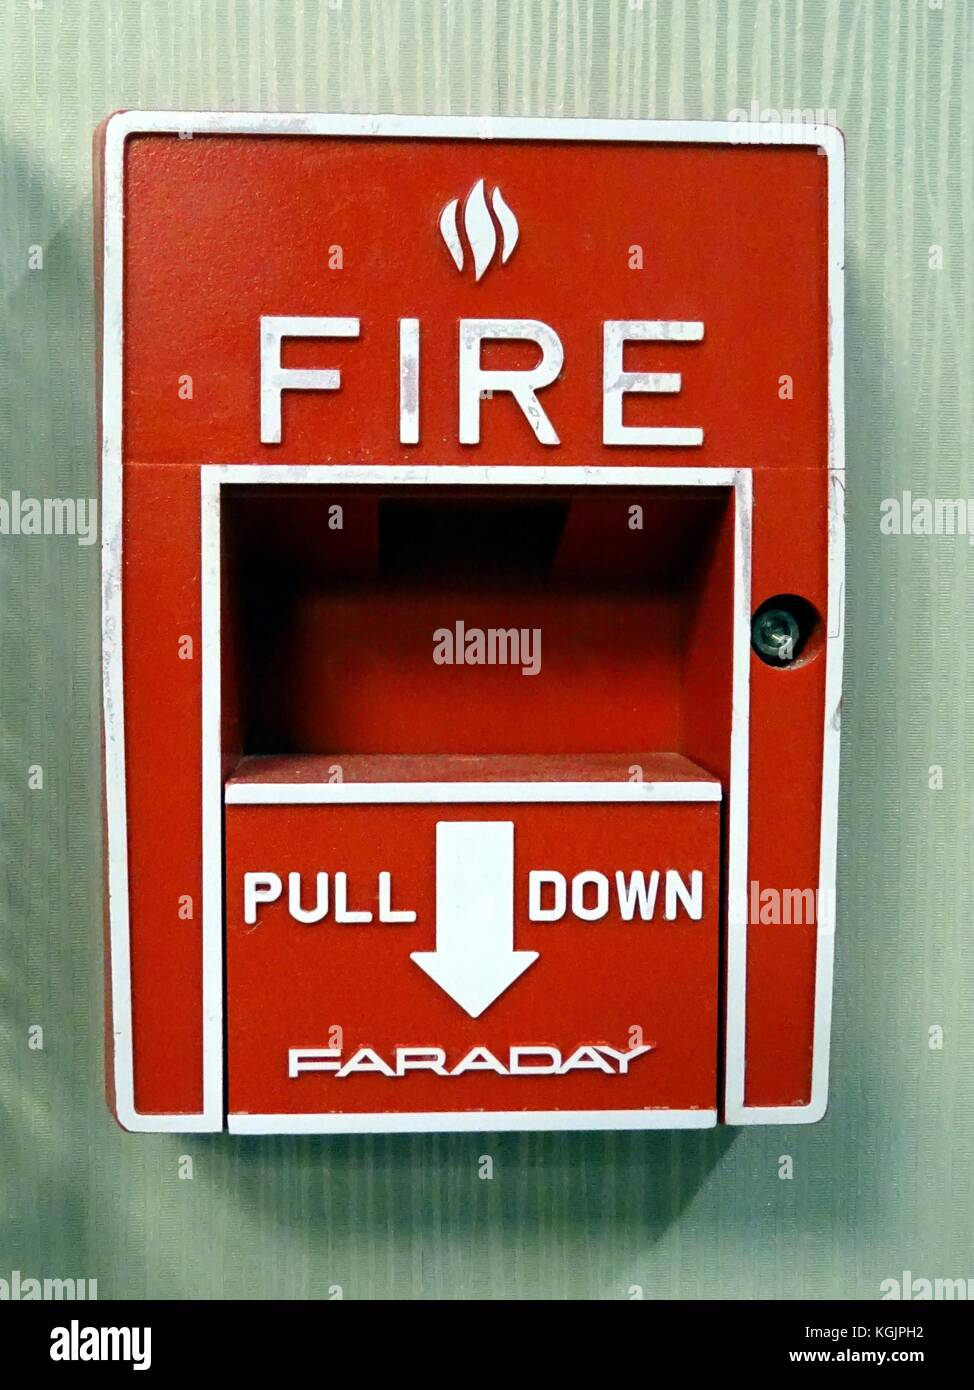 A close up view of a fire alarm - Stock Image